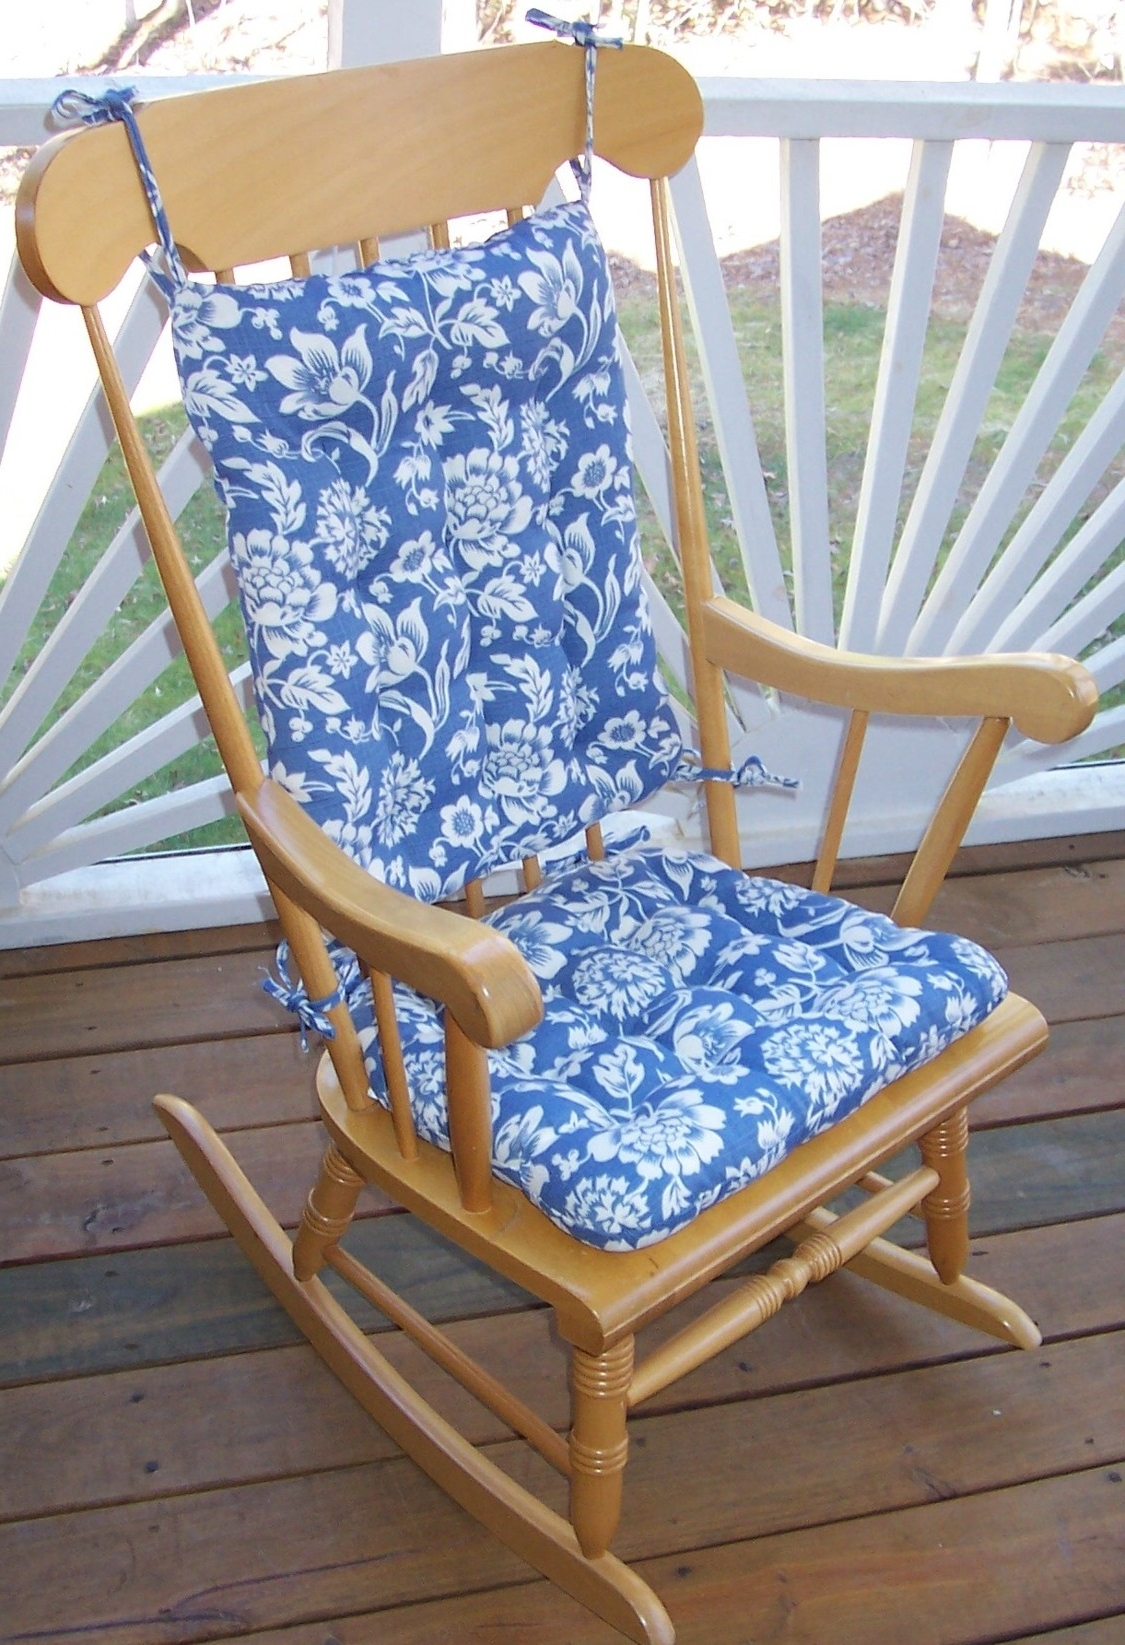 Rocking Chair Cushions For Outdoor For Most Popular Outdoor Rocking Chair Cushions Pattern : Beautiful Outdoor Rocking (View 8 of 15)